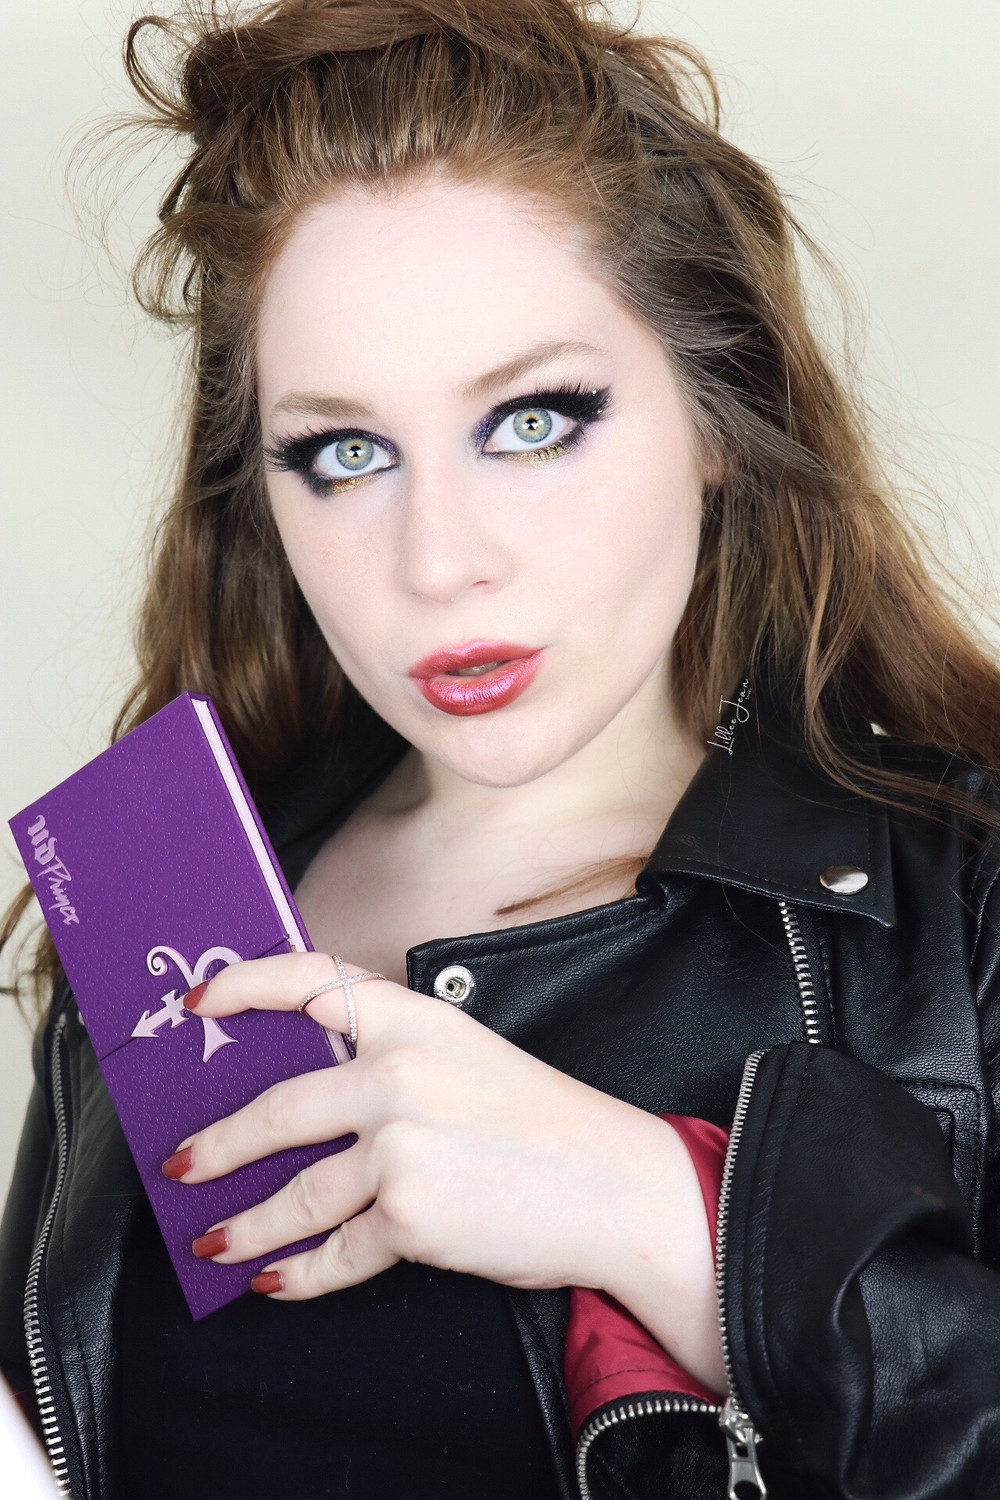 Urban Decay Prince PURPLE GOLD Makeup Tutorial 2021 | Lillee Jean